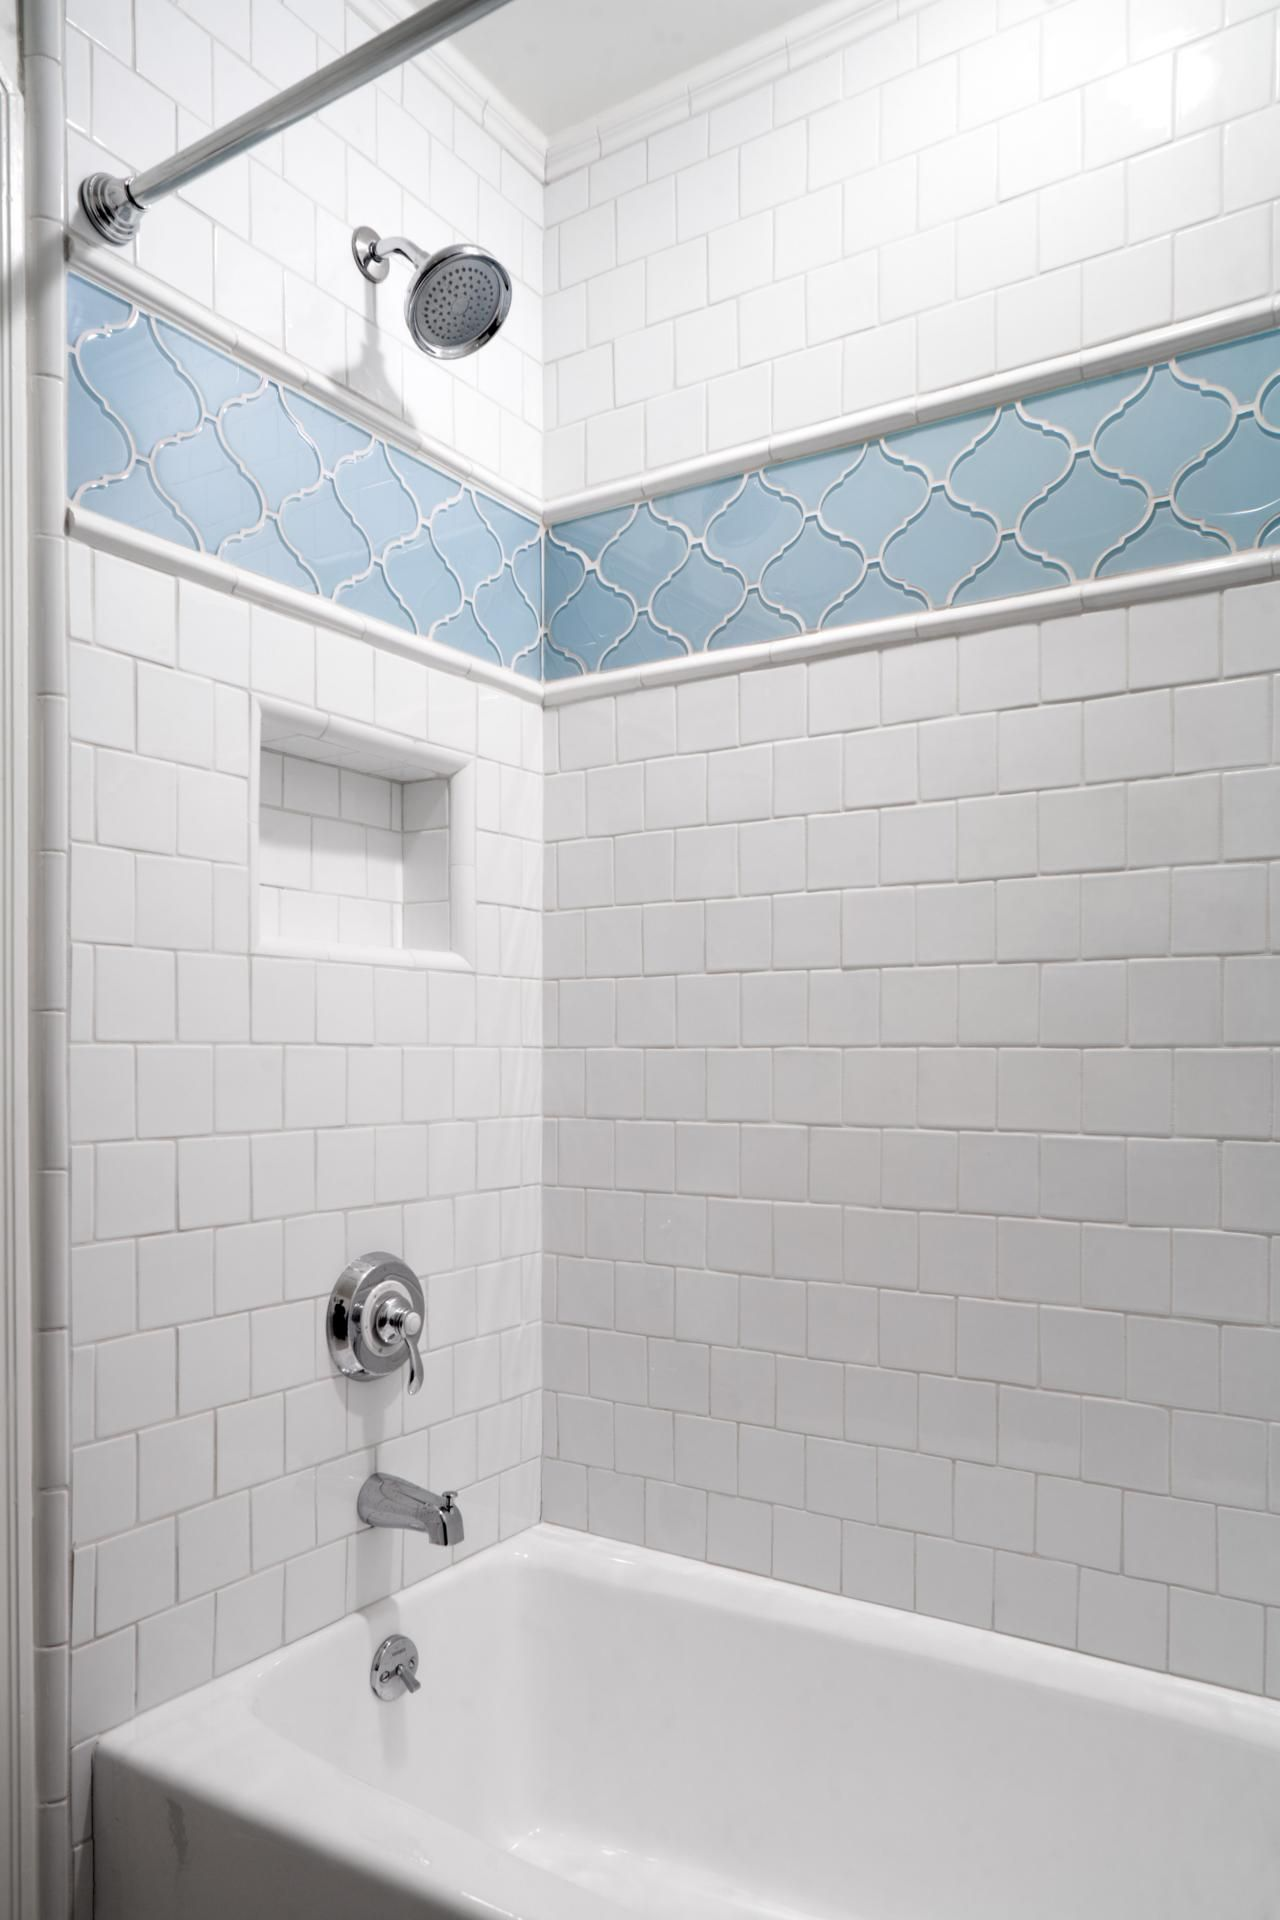 lines wall pin on your clean mom for by pinterest michael jason the shower likes tile like accent tiles